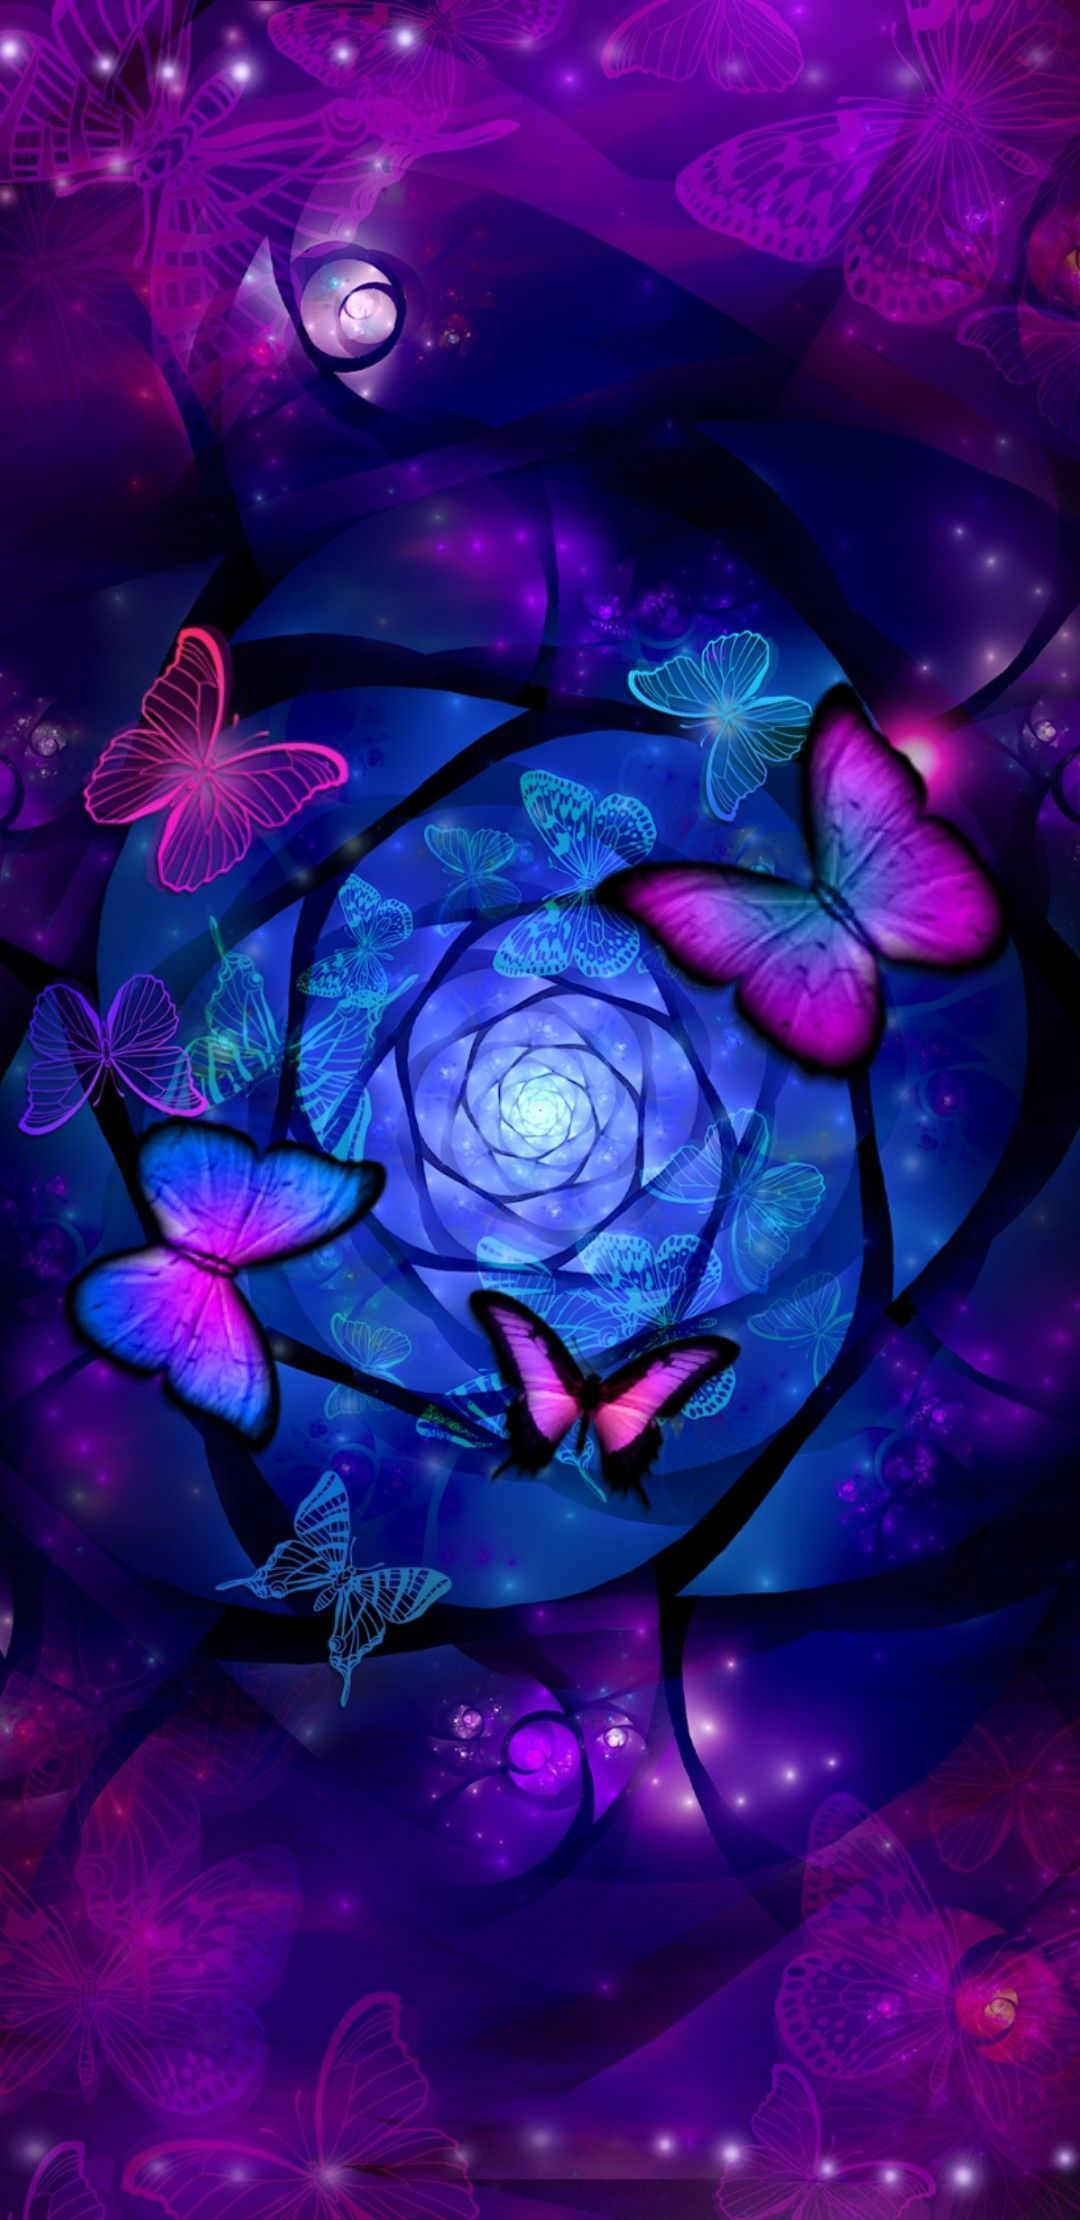 Galaxy Butterfly Wallpapers - Wallpaper Cave